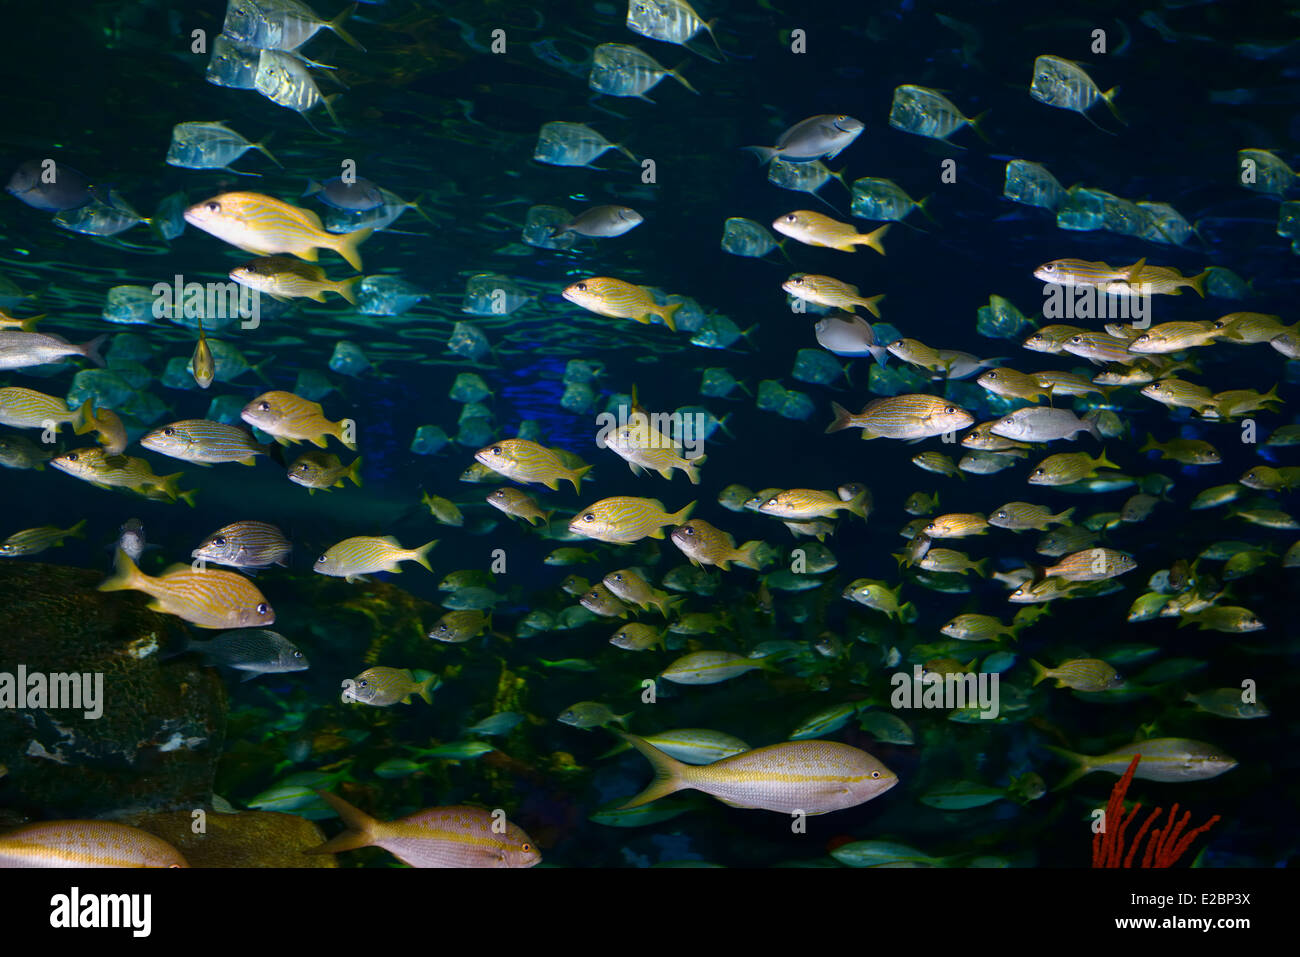 Fish in ripleys aquarium - Schools Or Shoals Of French Grunt Yellowtail And Bluestripe Snappers With Silver Lookdown Fish In Ripleys Aquarium Toronto